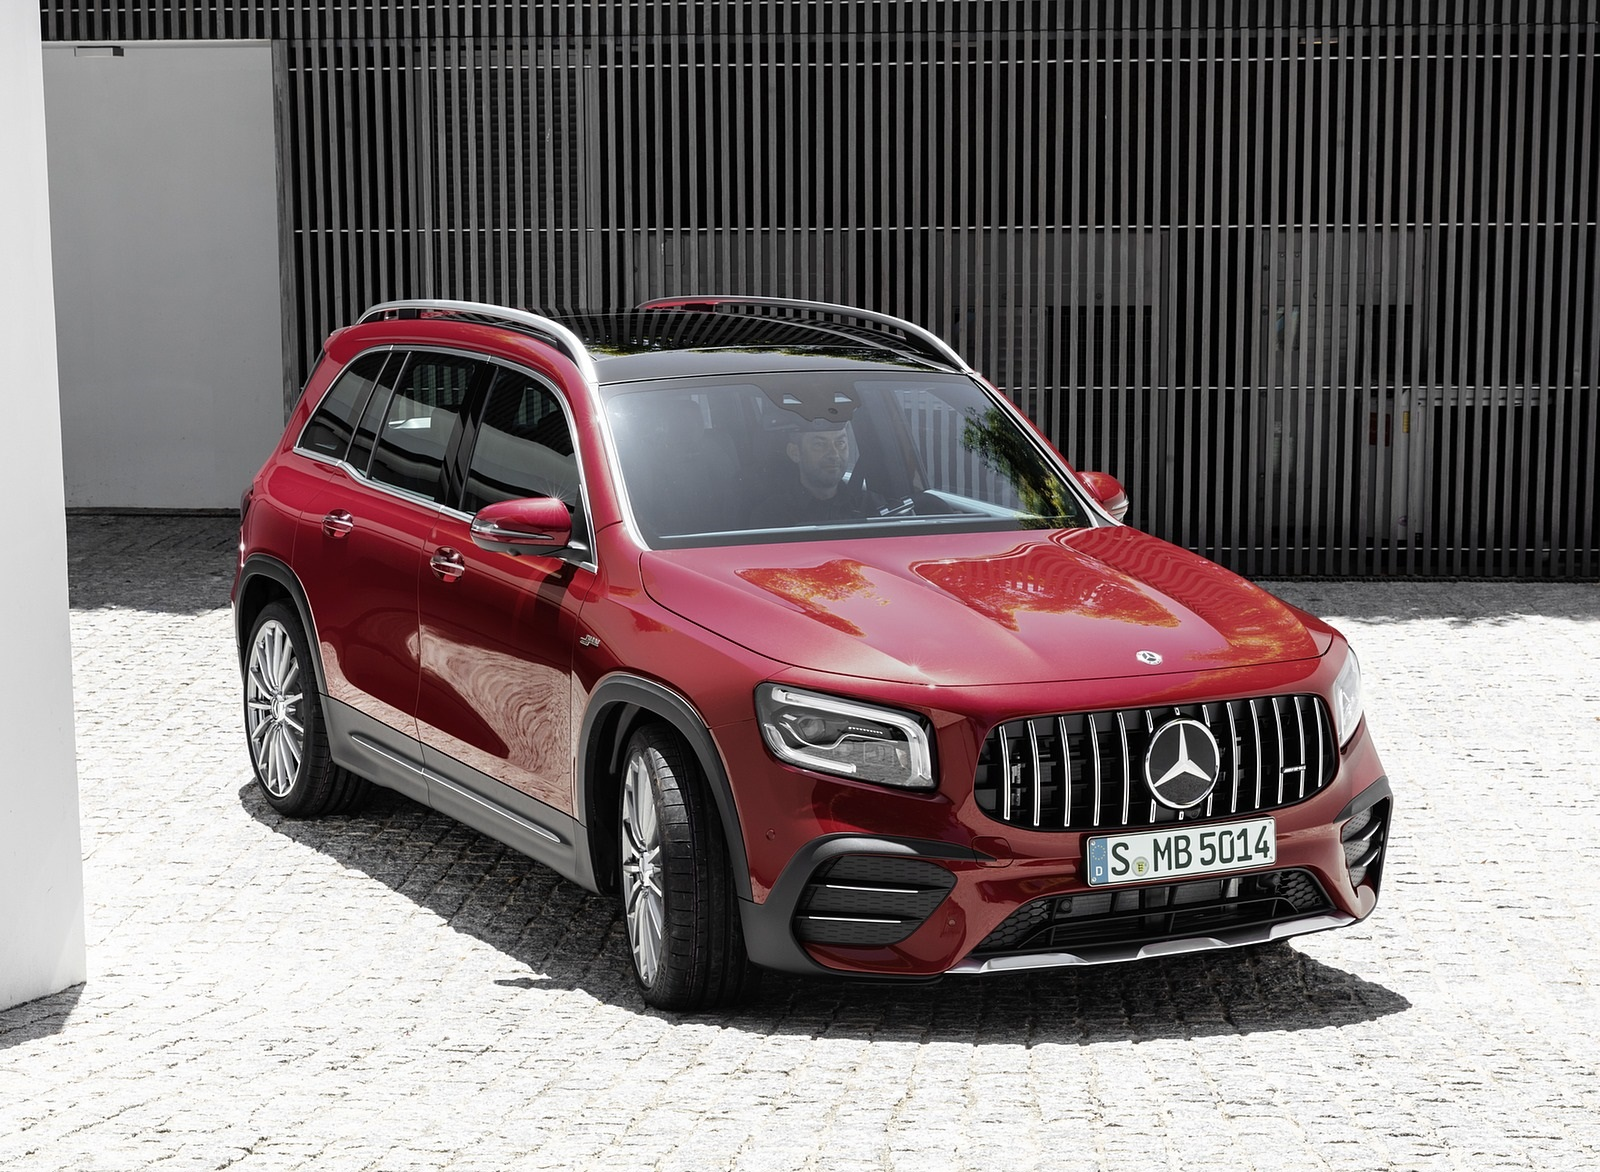 2021 Mercedes-AMG GLB 35 4MATIC (Color: Designo Patagonia Red Metallic) Front Three-Quarter Wallpapers (14)